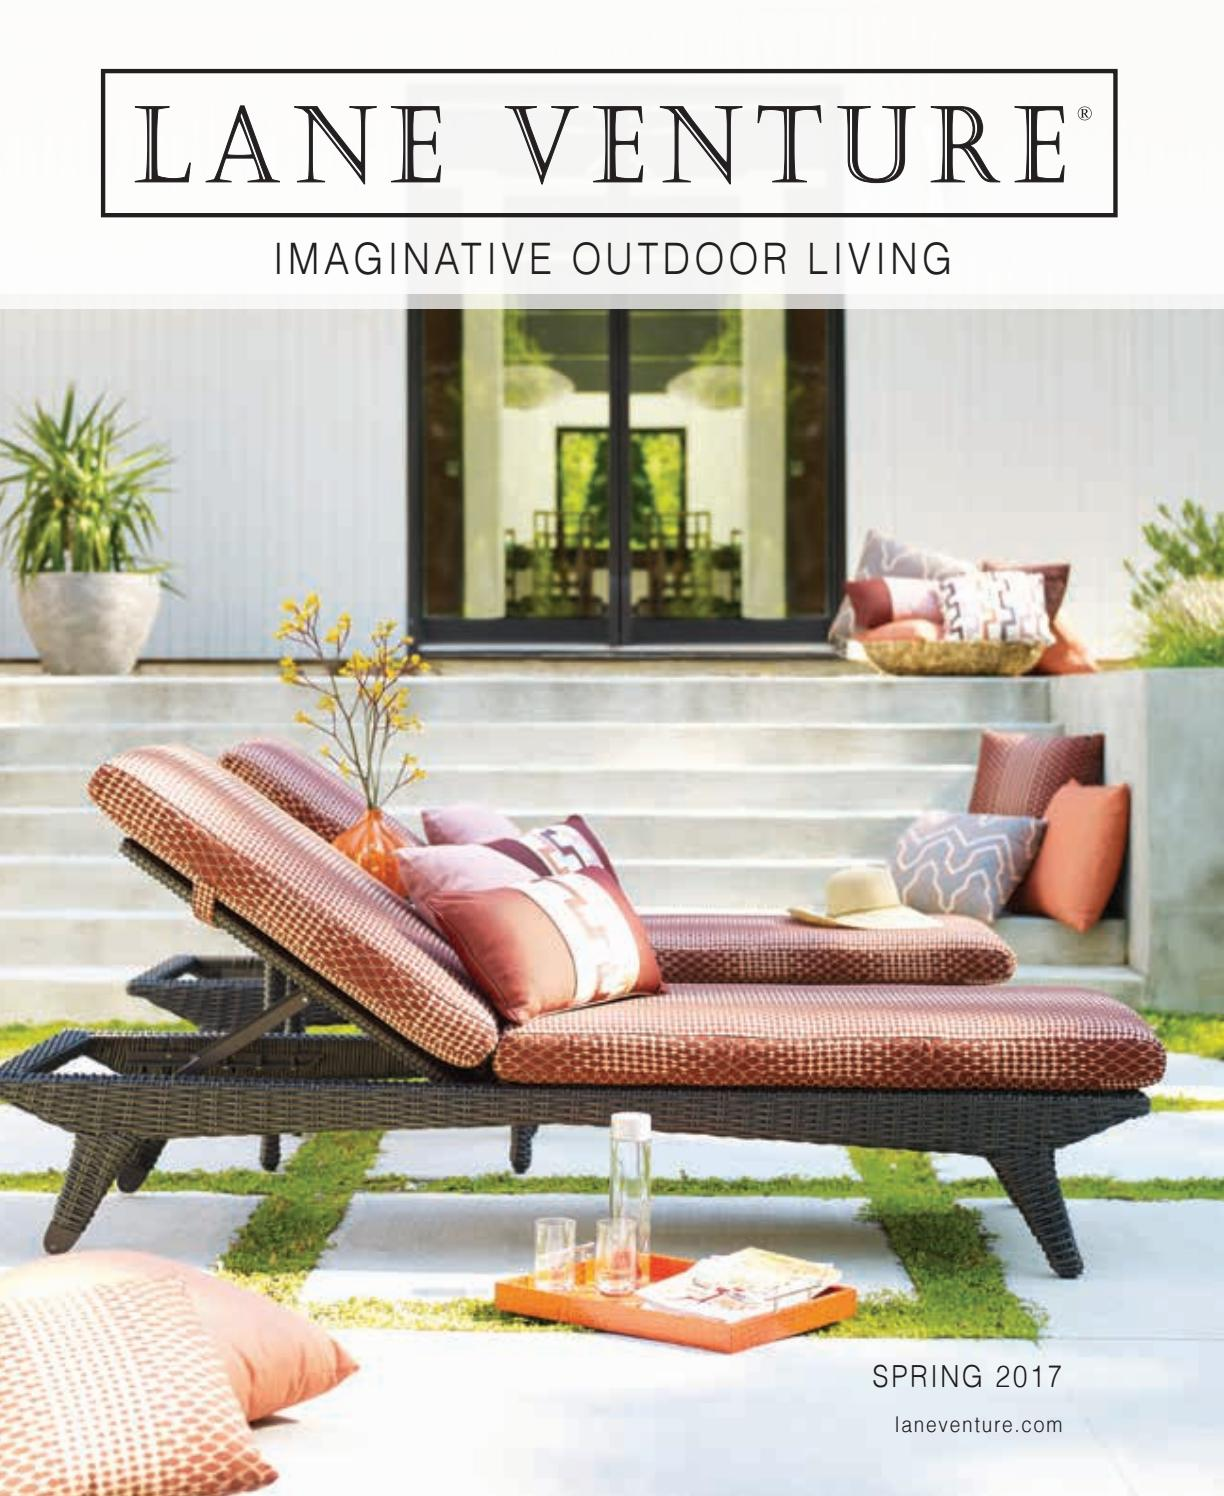 Lane Venture 2017 Catalog By Sunnyland Furniture   Issuu